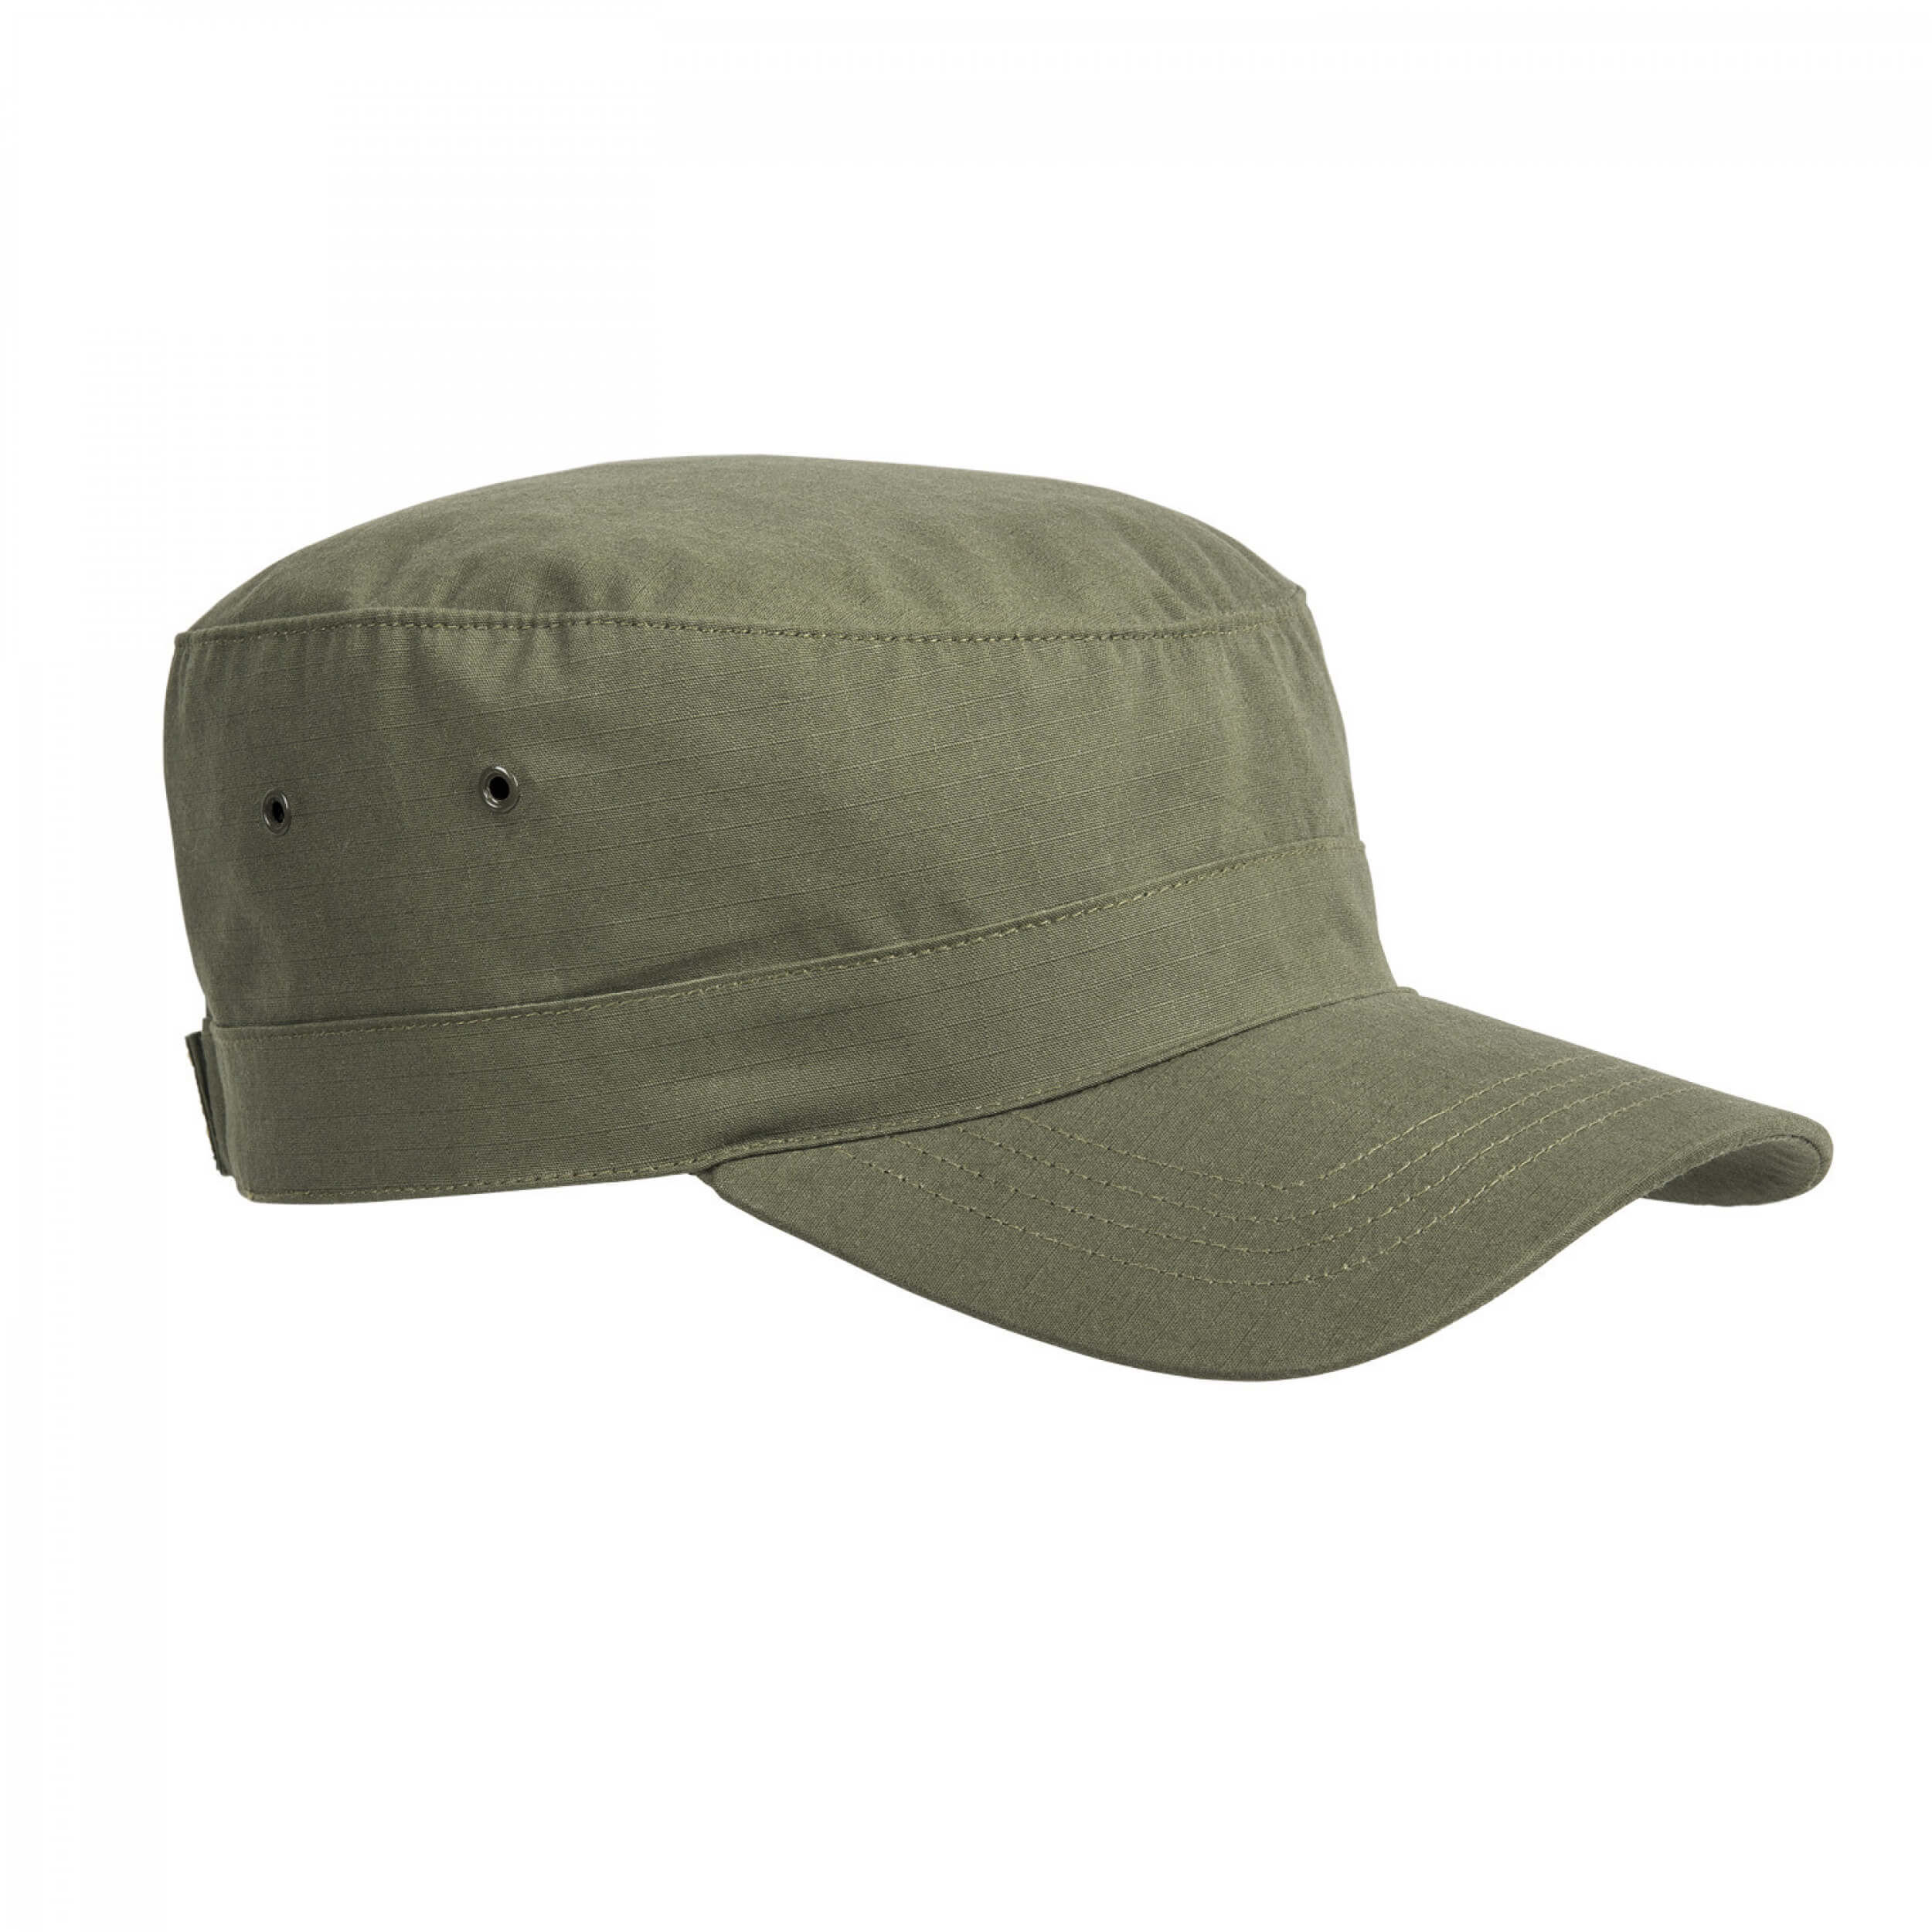 Helikon-Tex Combat Cap - Polycotton Ripstop - Olive Green